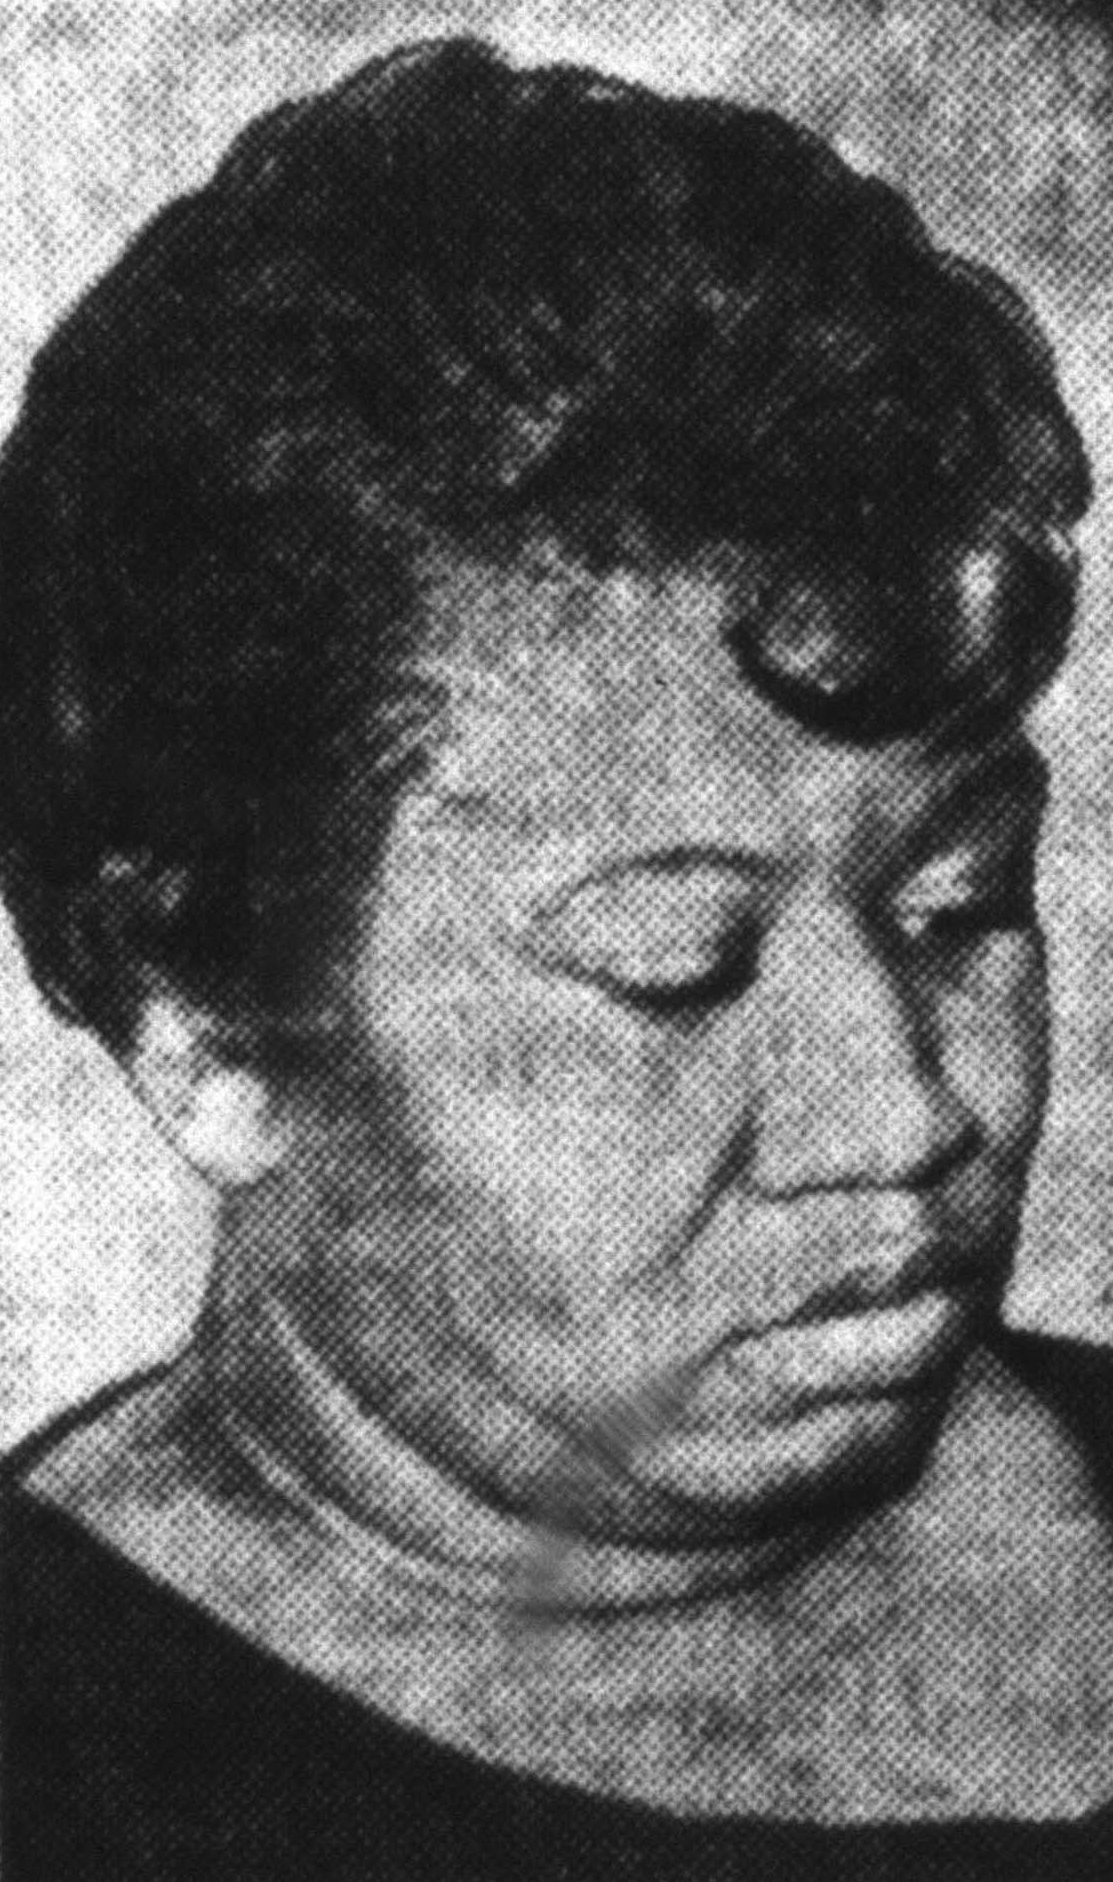 Mae Mallory, Clarence Henry Seniors Papers. COPYRIGHT.